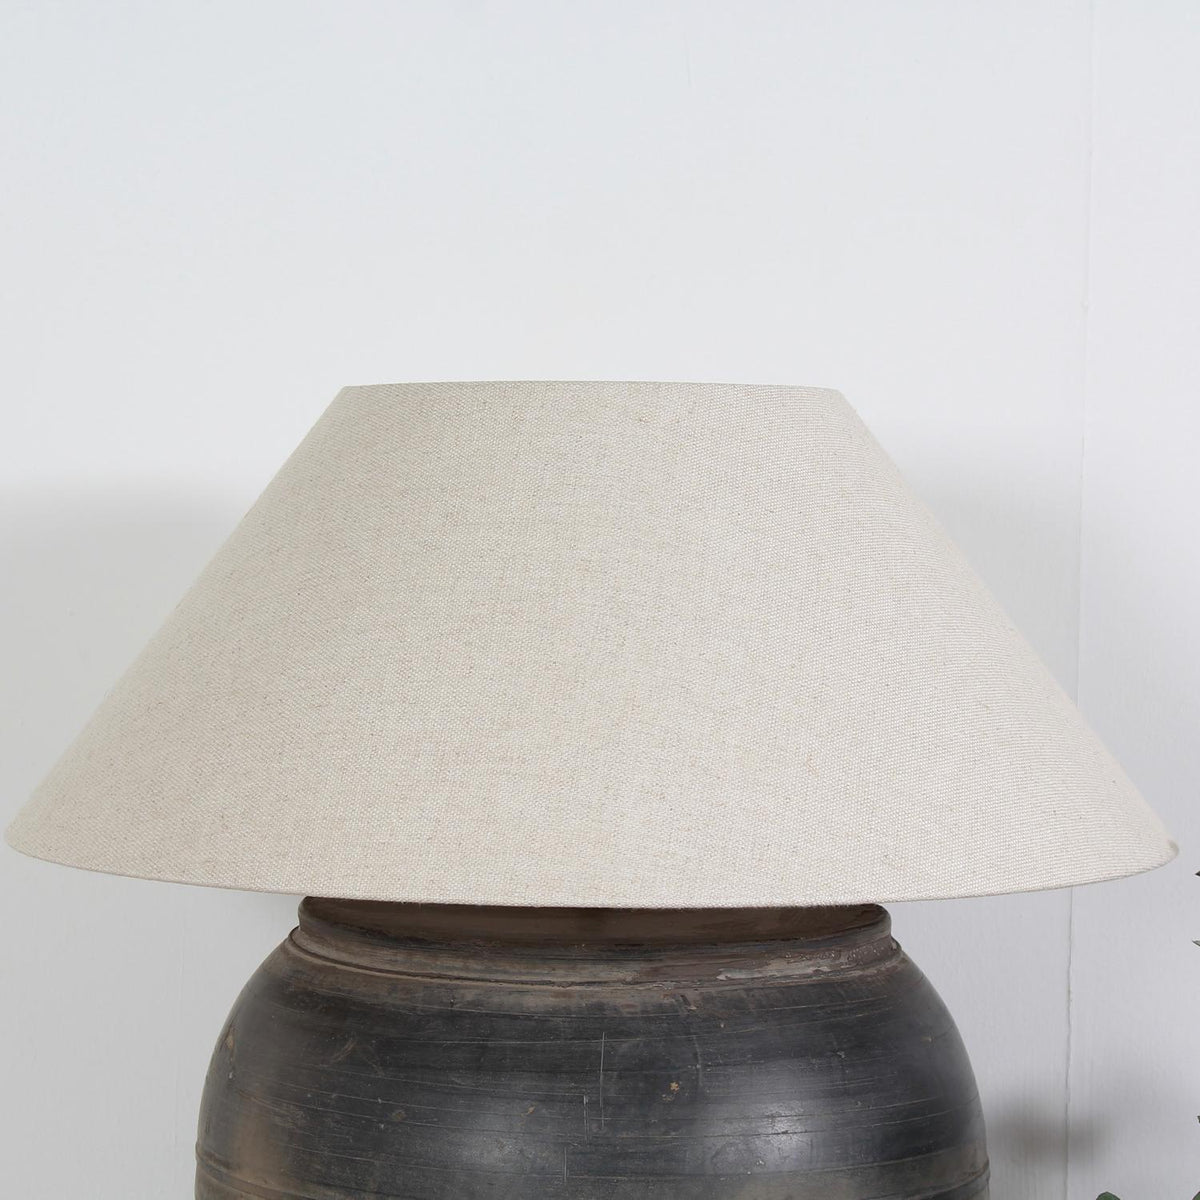 Enormous Chinese Storage Jar Lamp with Belgium Linen Shade